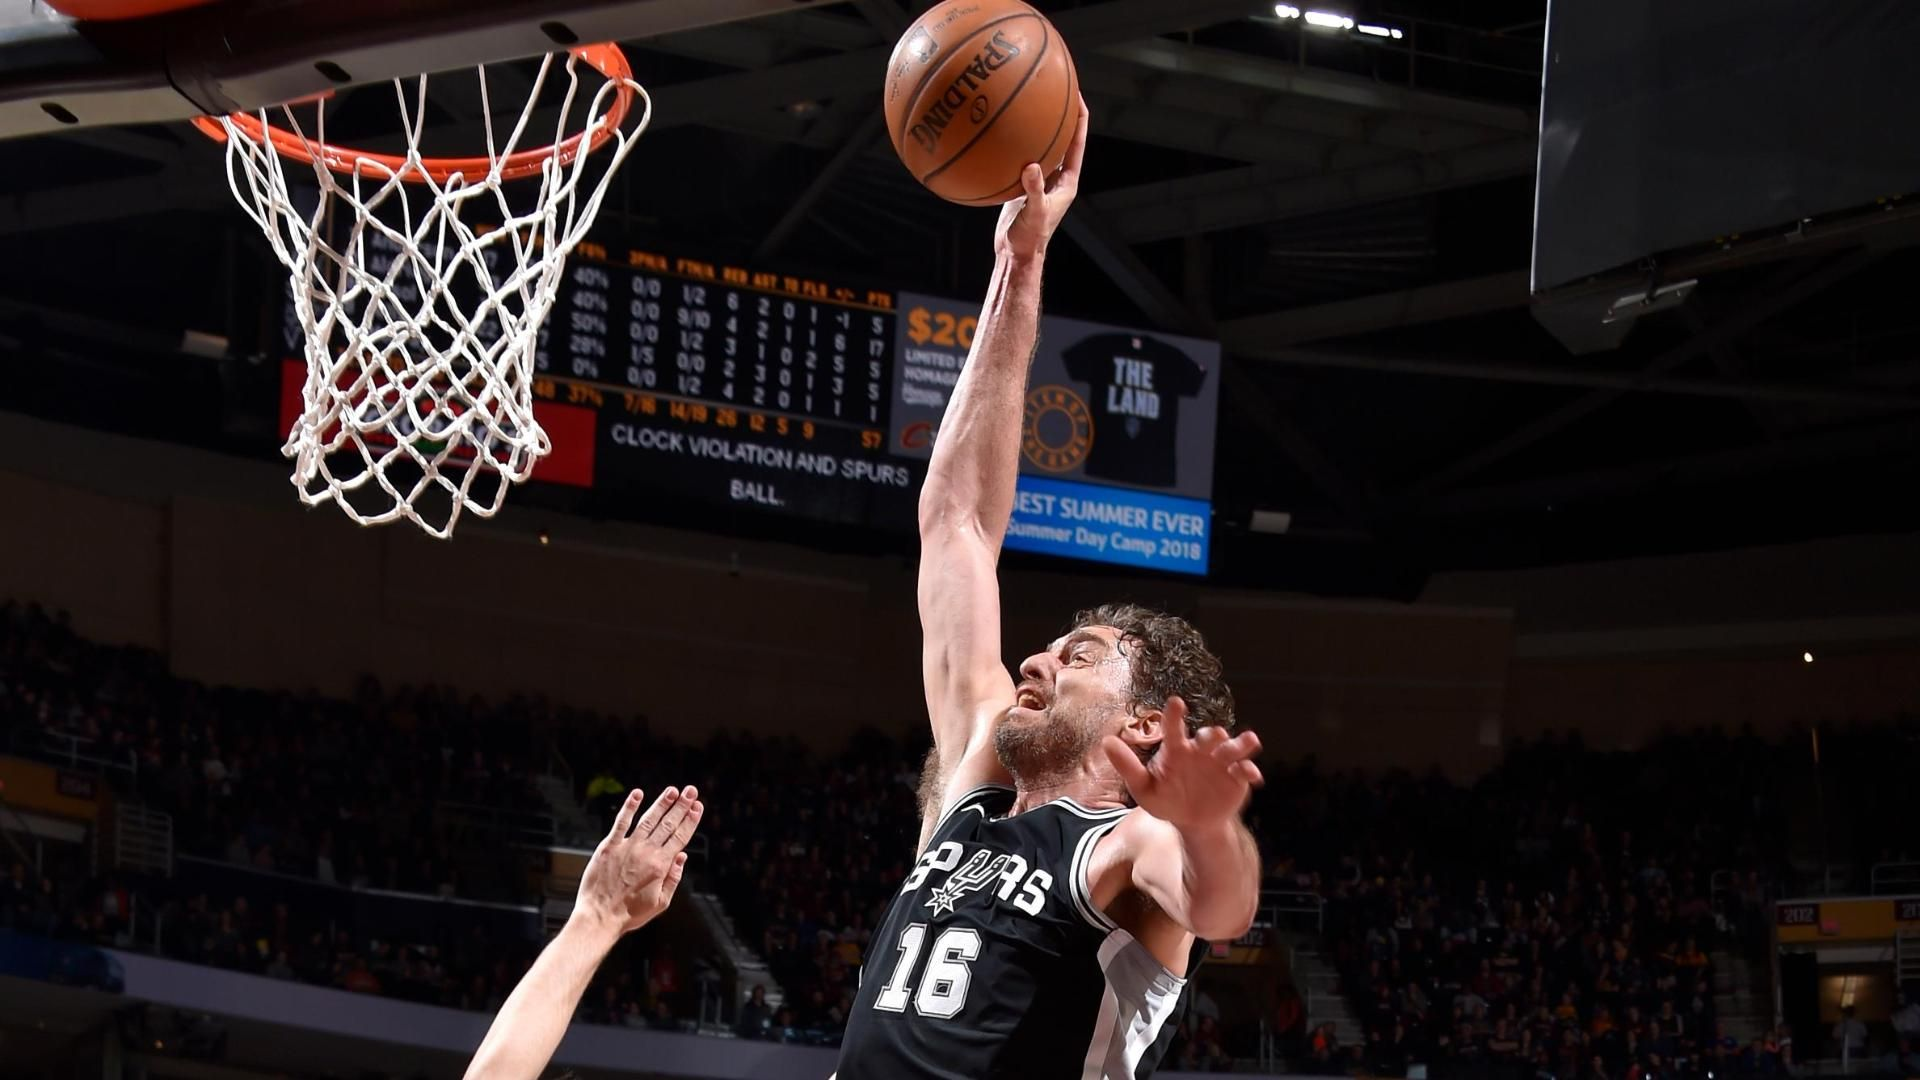 Gasol turns back the clock with emphatic slam